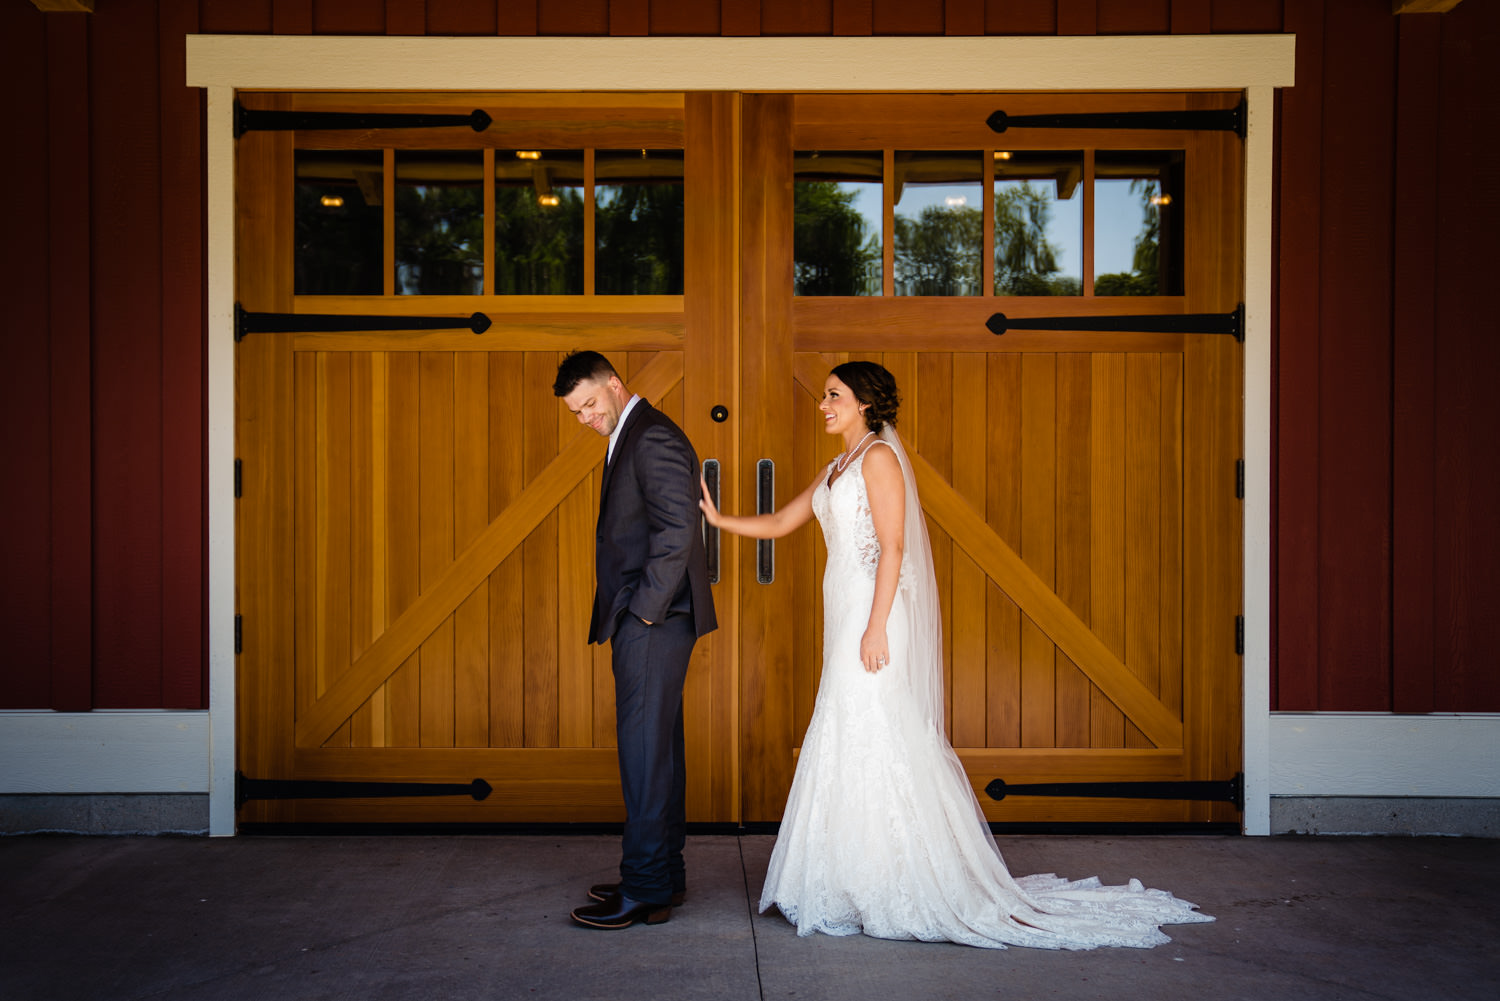 Sweet heart Winery Wedding | Loveland Colorado Wedding Photographer | JMGant Photography